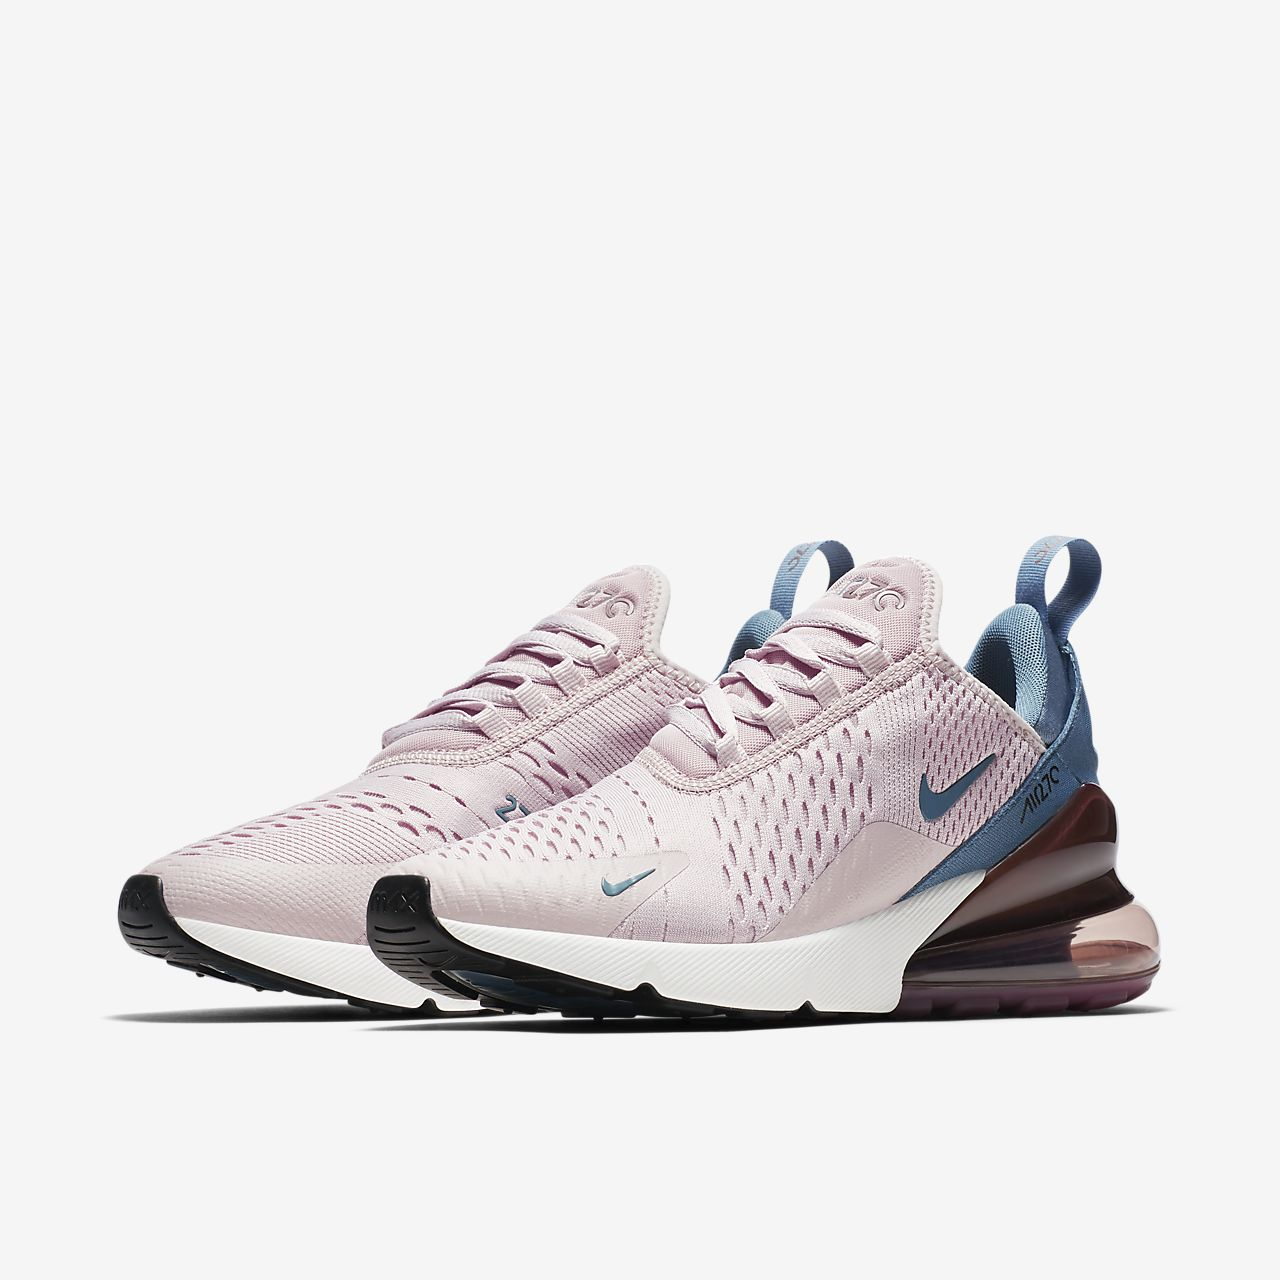 5ddceaa0a845 Nike Air Max 270 Women s Shoe. Nike.com